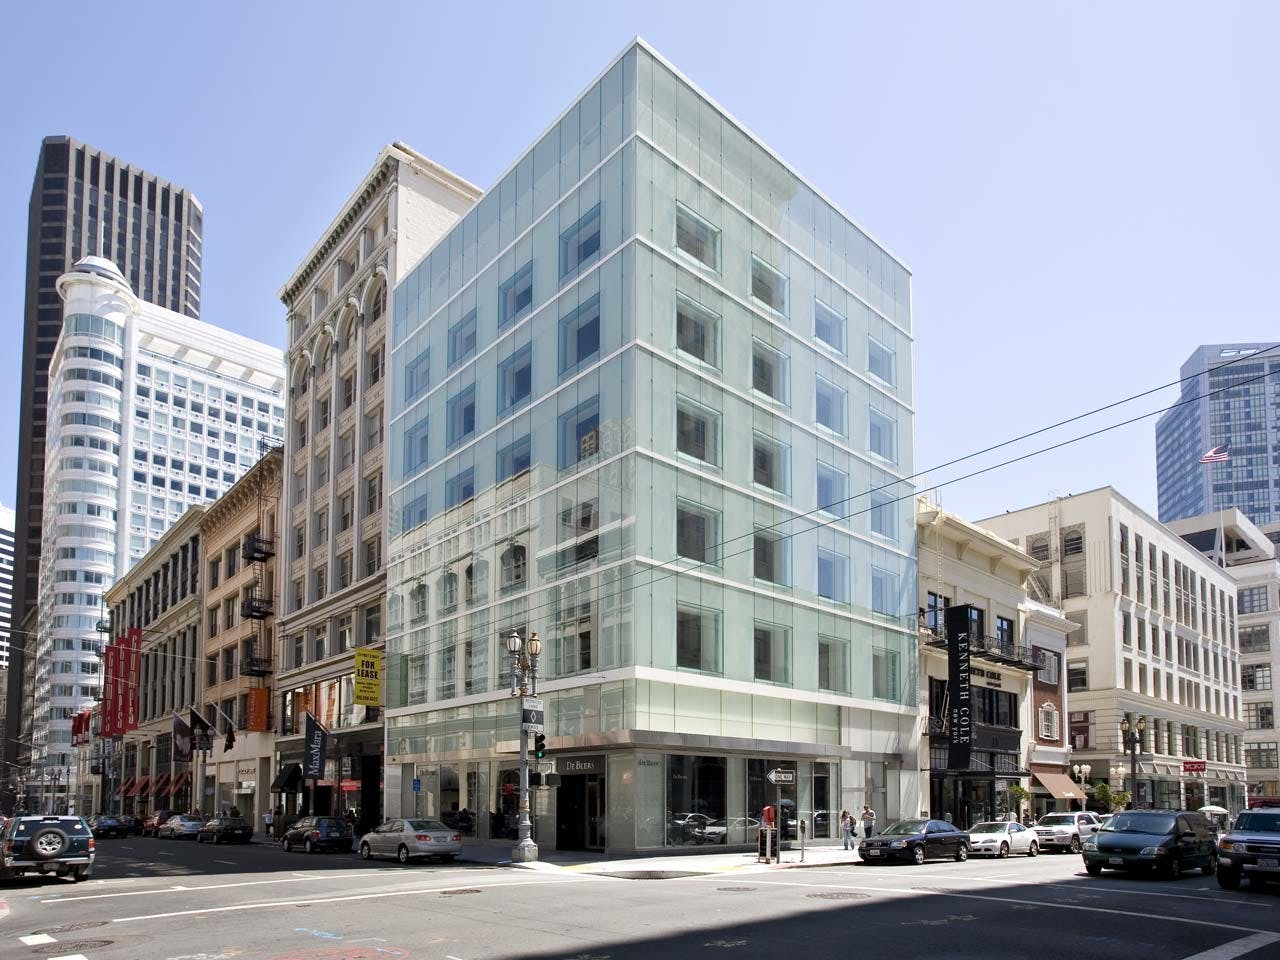 185 Post Street Wz Architecture Archinect